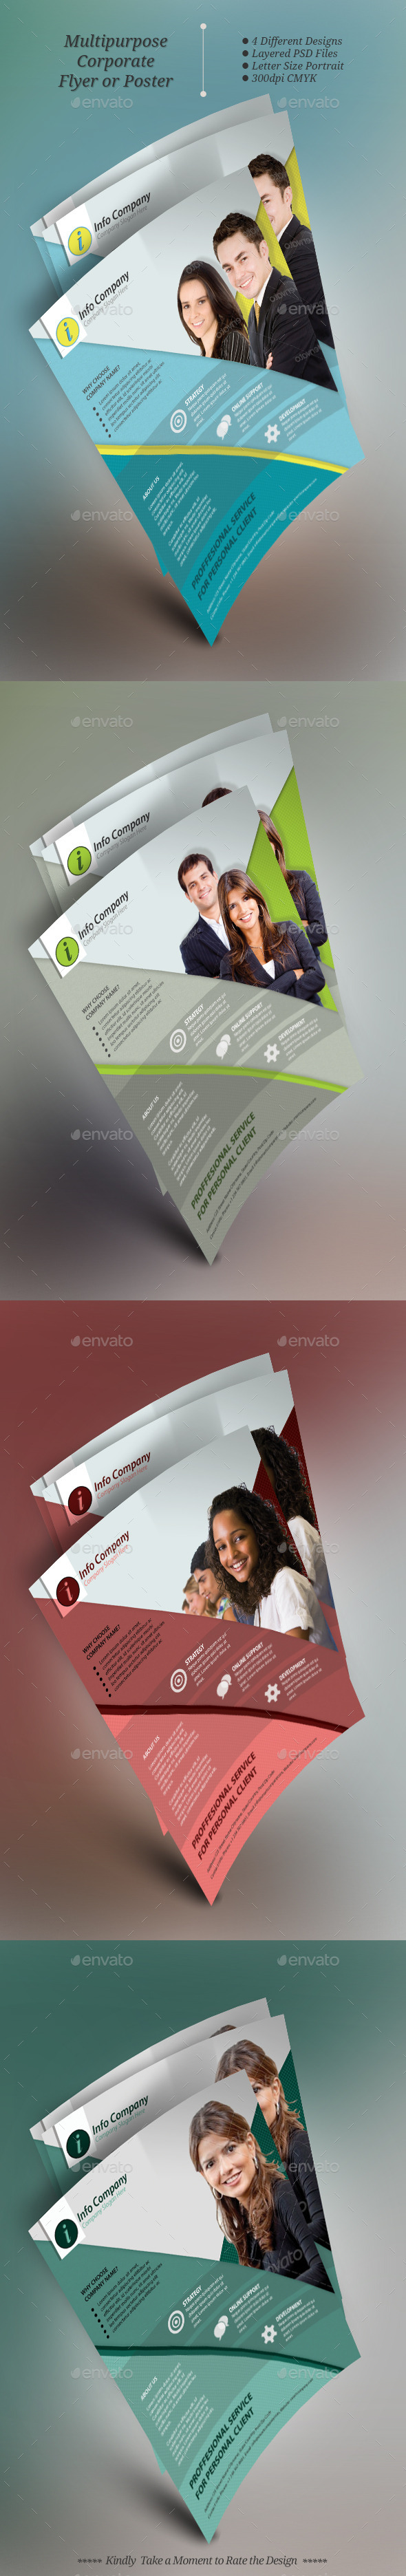 GraphicRiver Multipurpose Corporate Flyer Templates 9794750